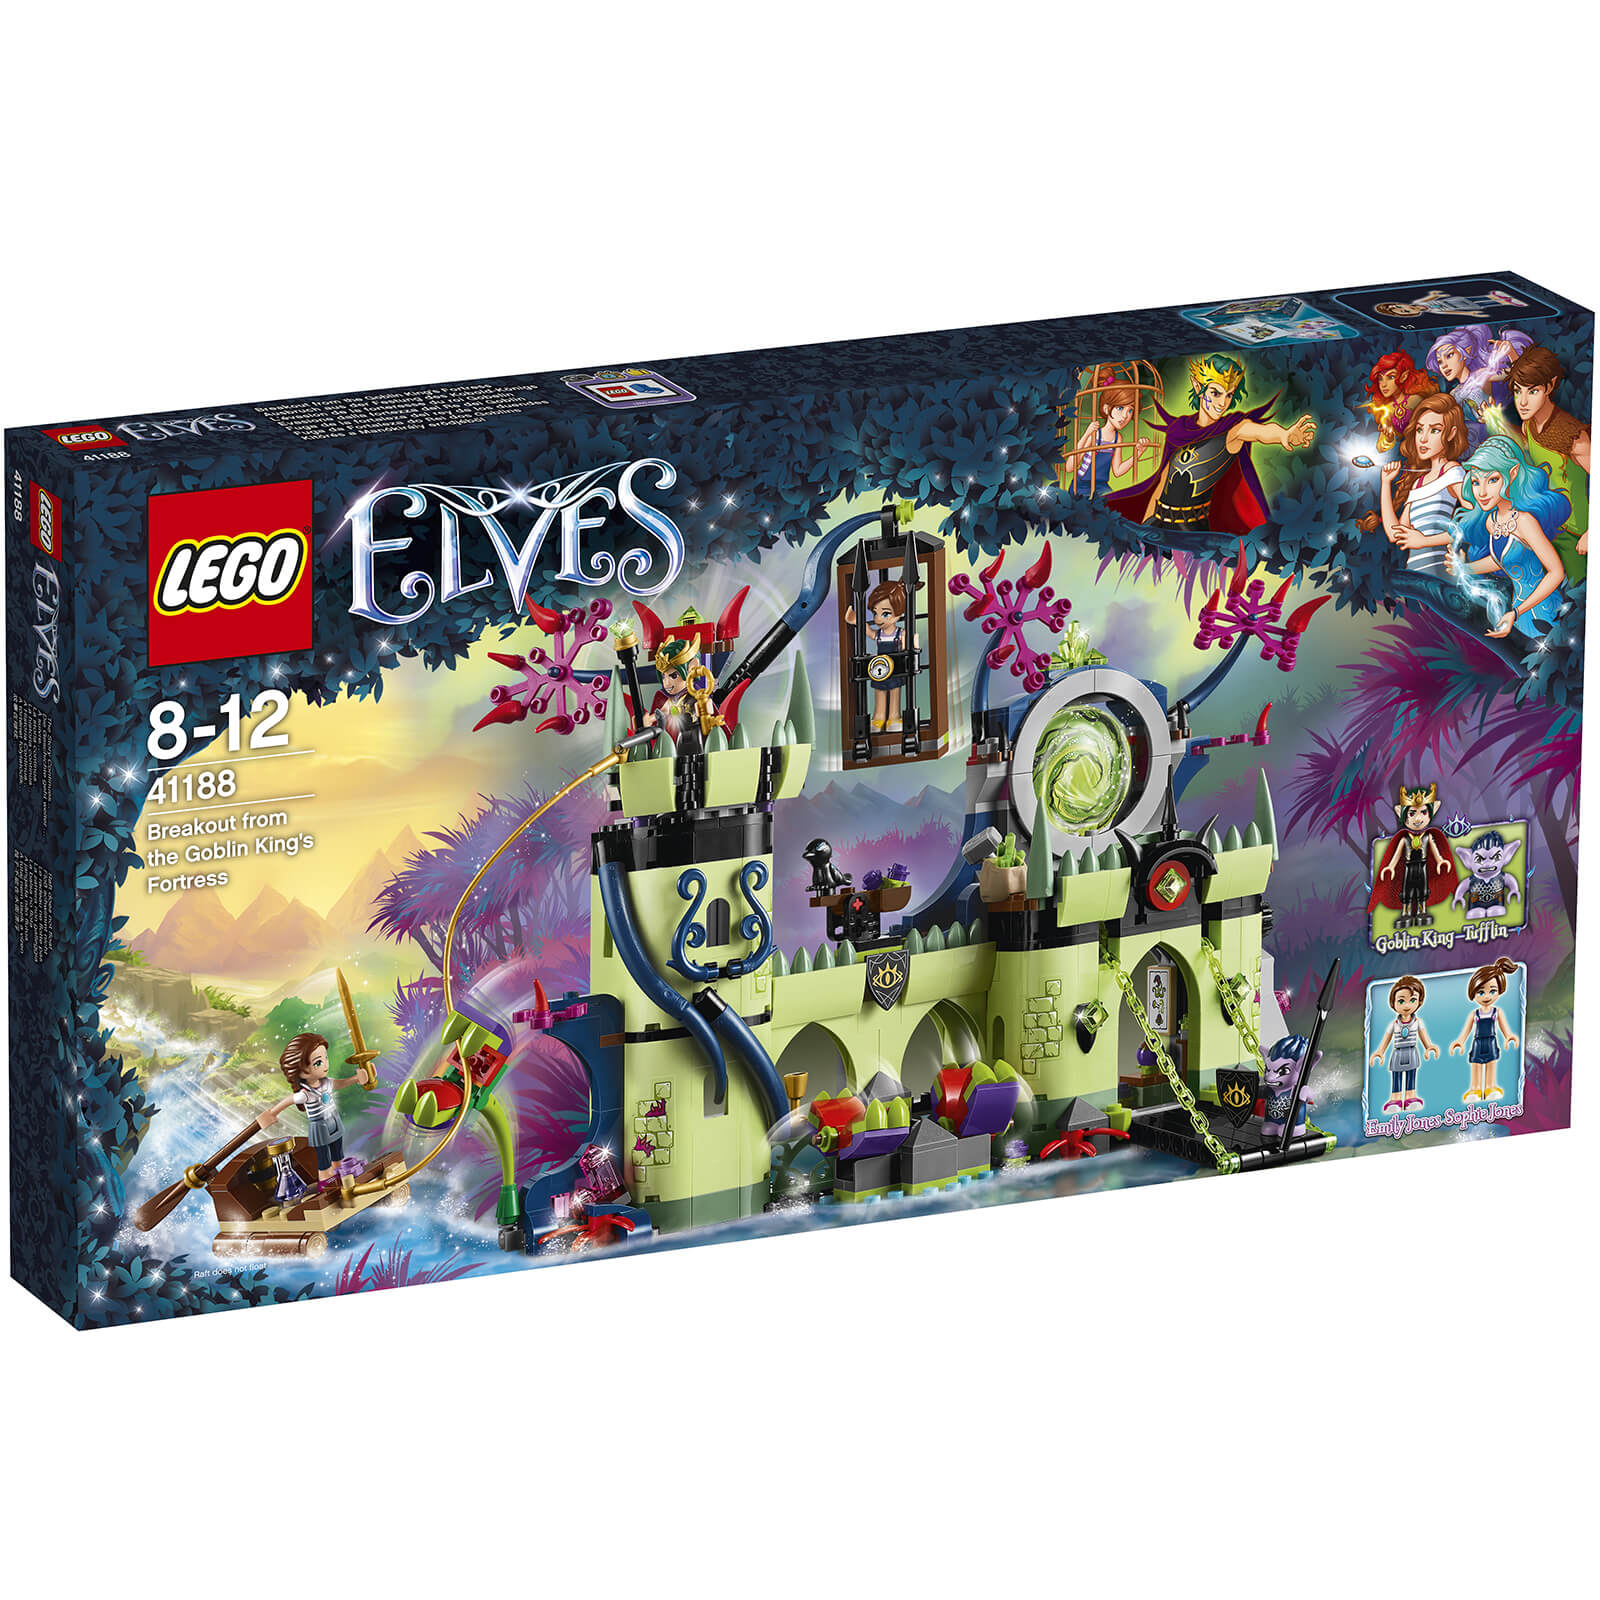 LEGO Elves: Breakout from the Goblin King